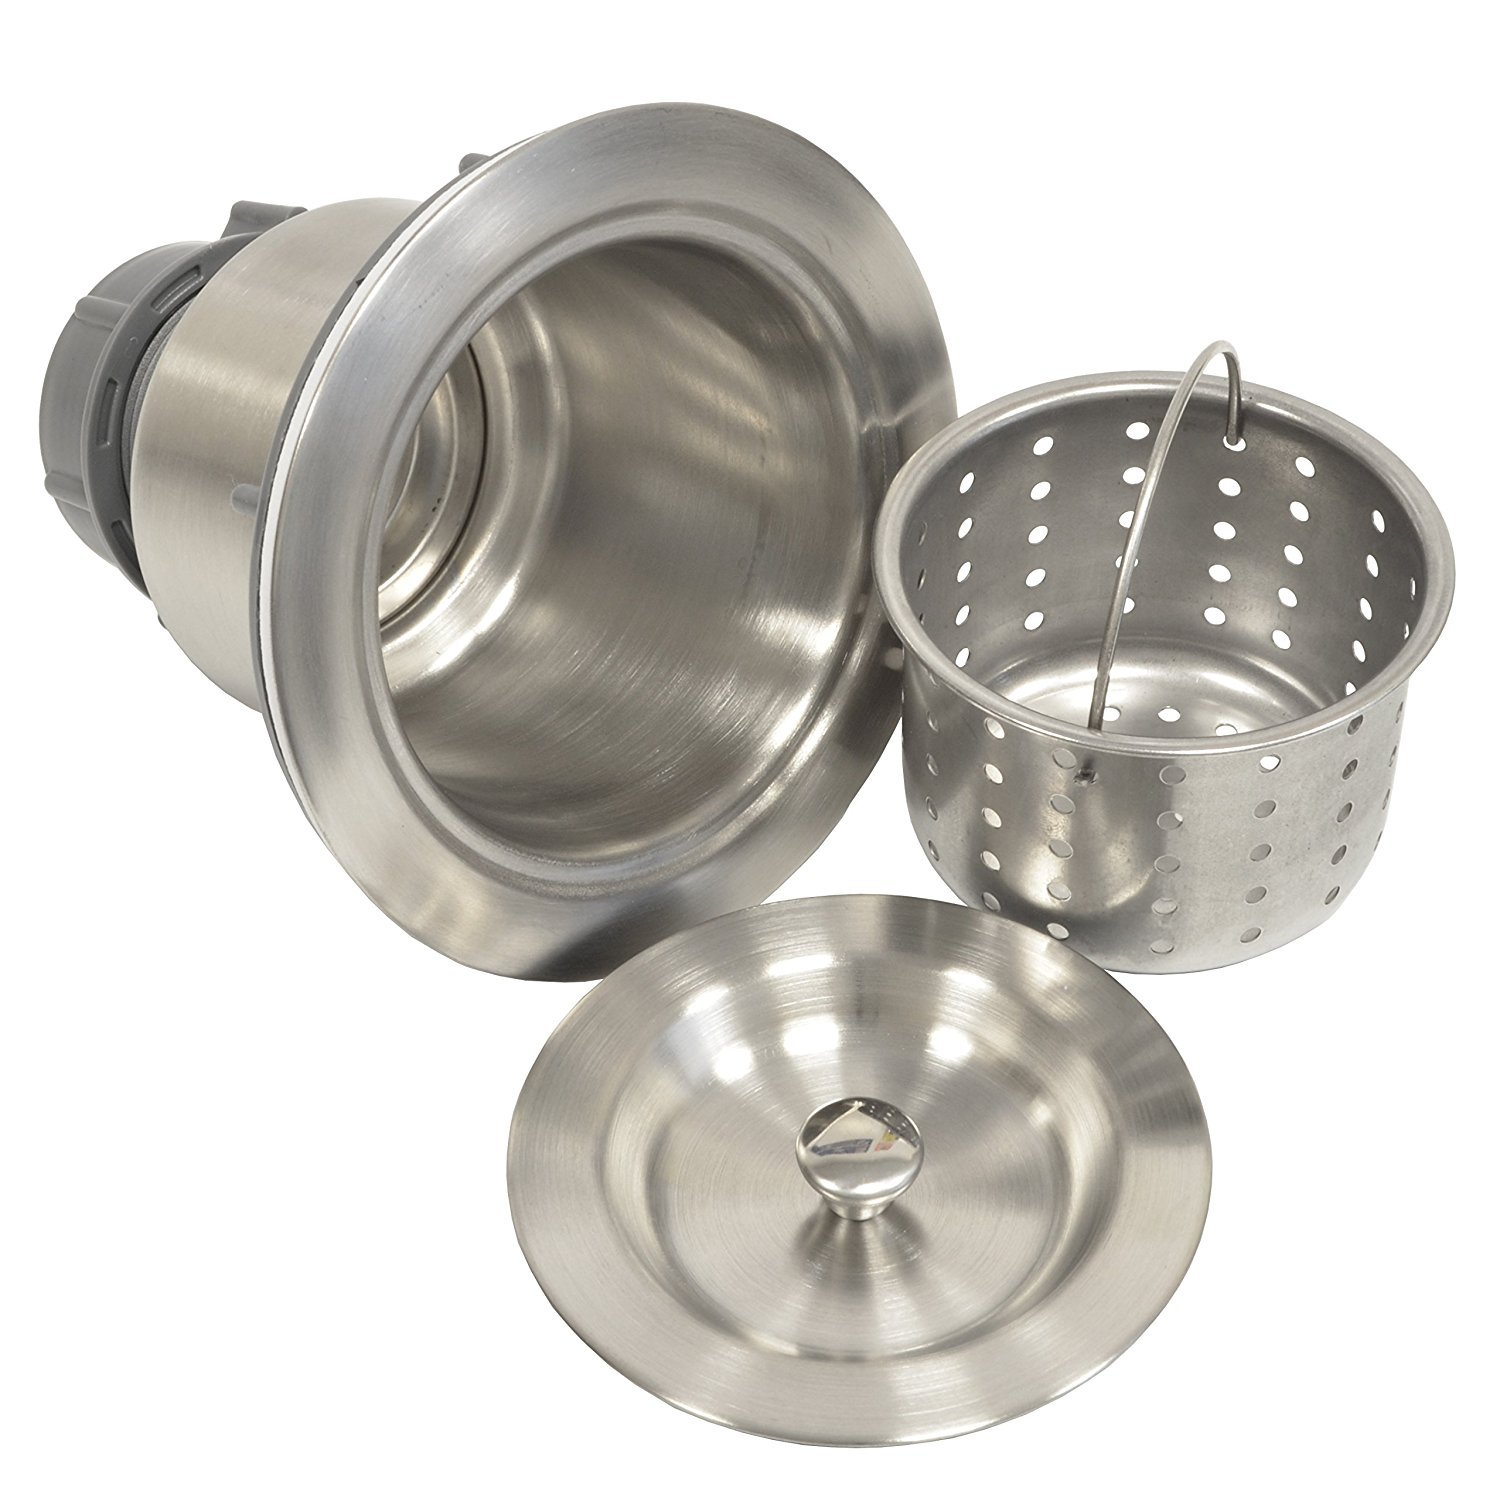 Coflex Extra Deep Cup Sink Basket Strainer with Sealing Lid, 304 Stainless Steel, Brushed Nickel Finish by Coflex